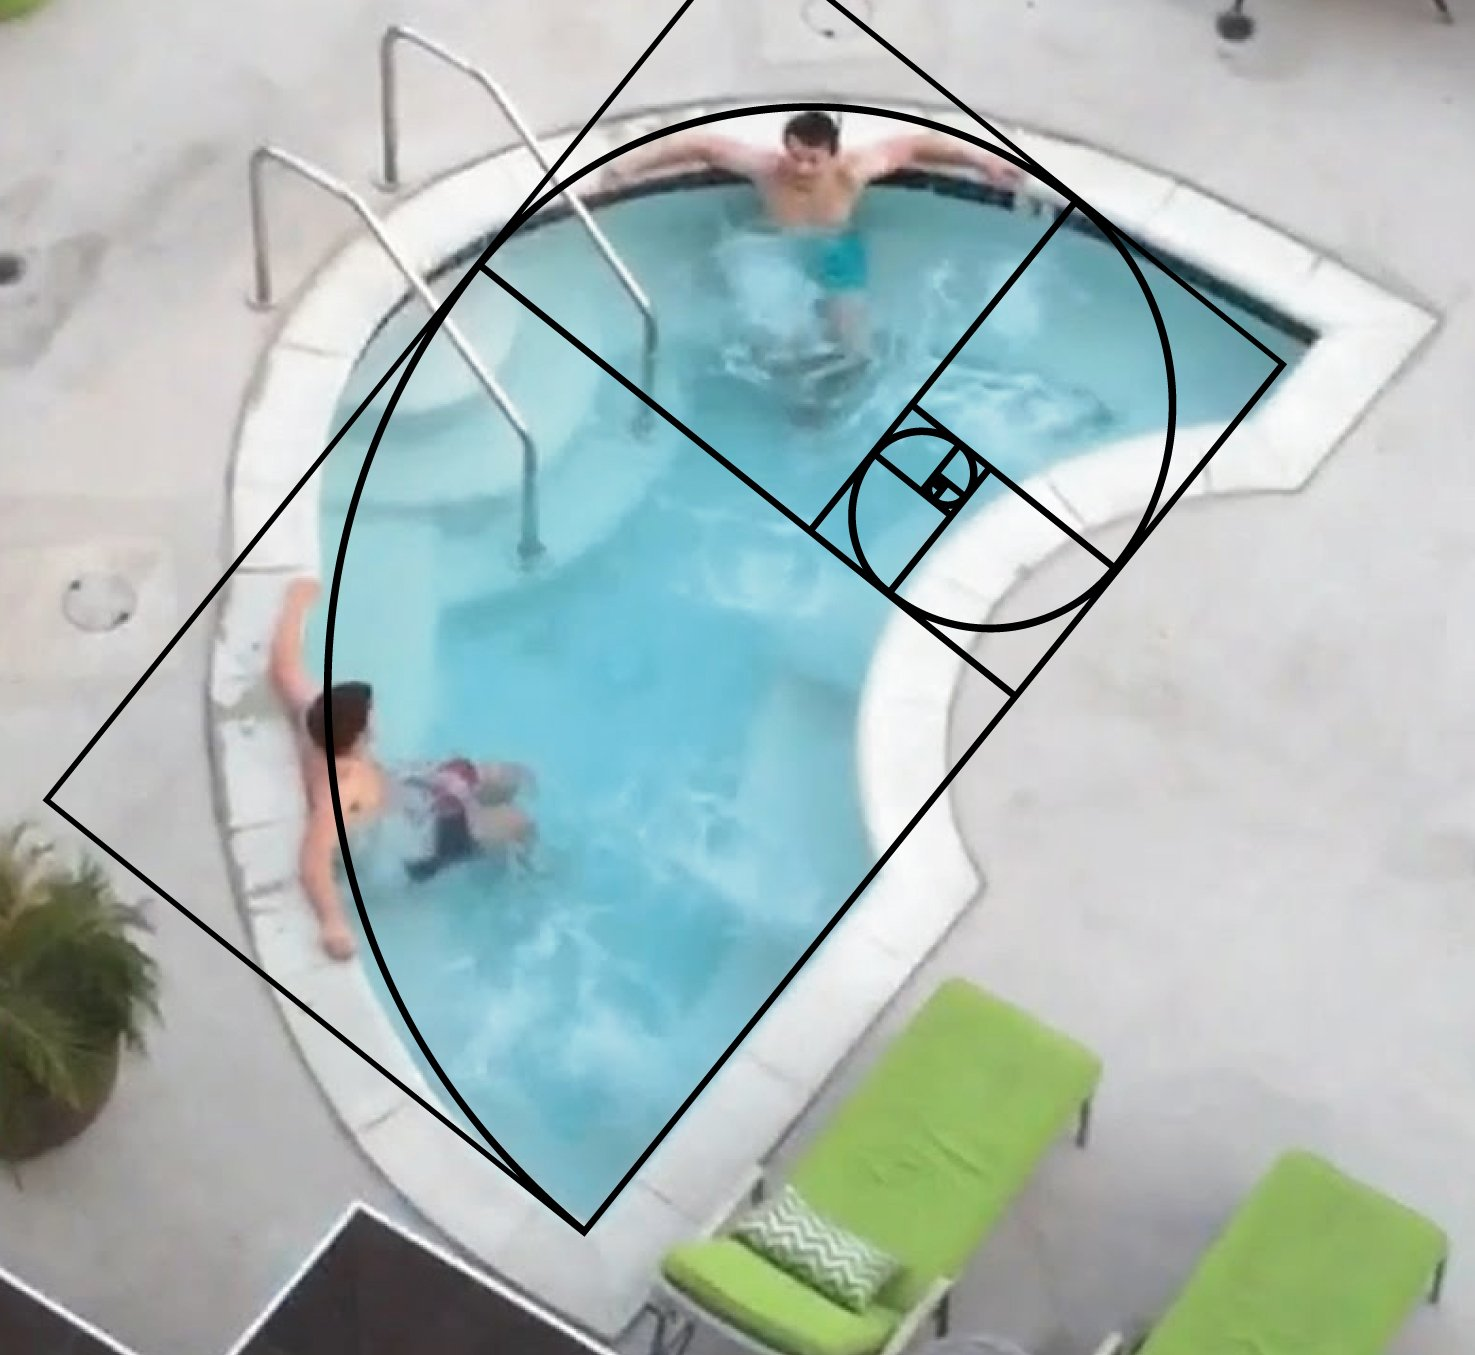 Two bros chilling in the hot tub five feet apart cause they're not gay https://t.co/IpC23p8tUq